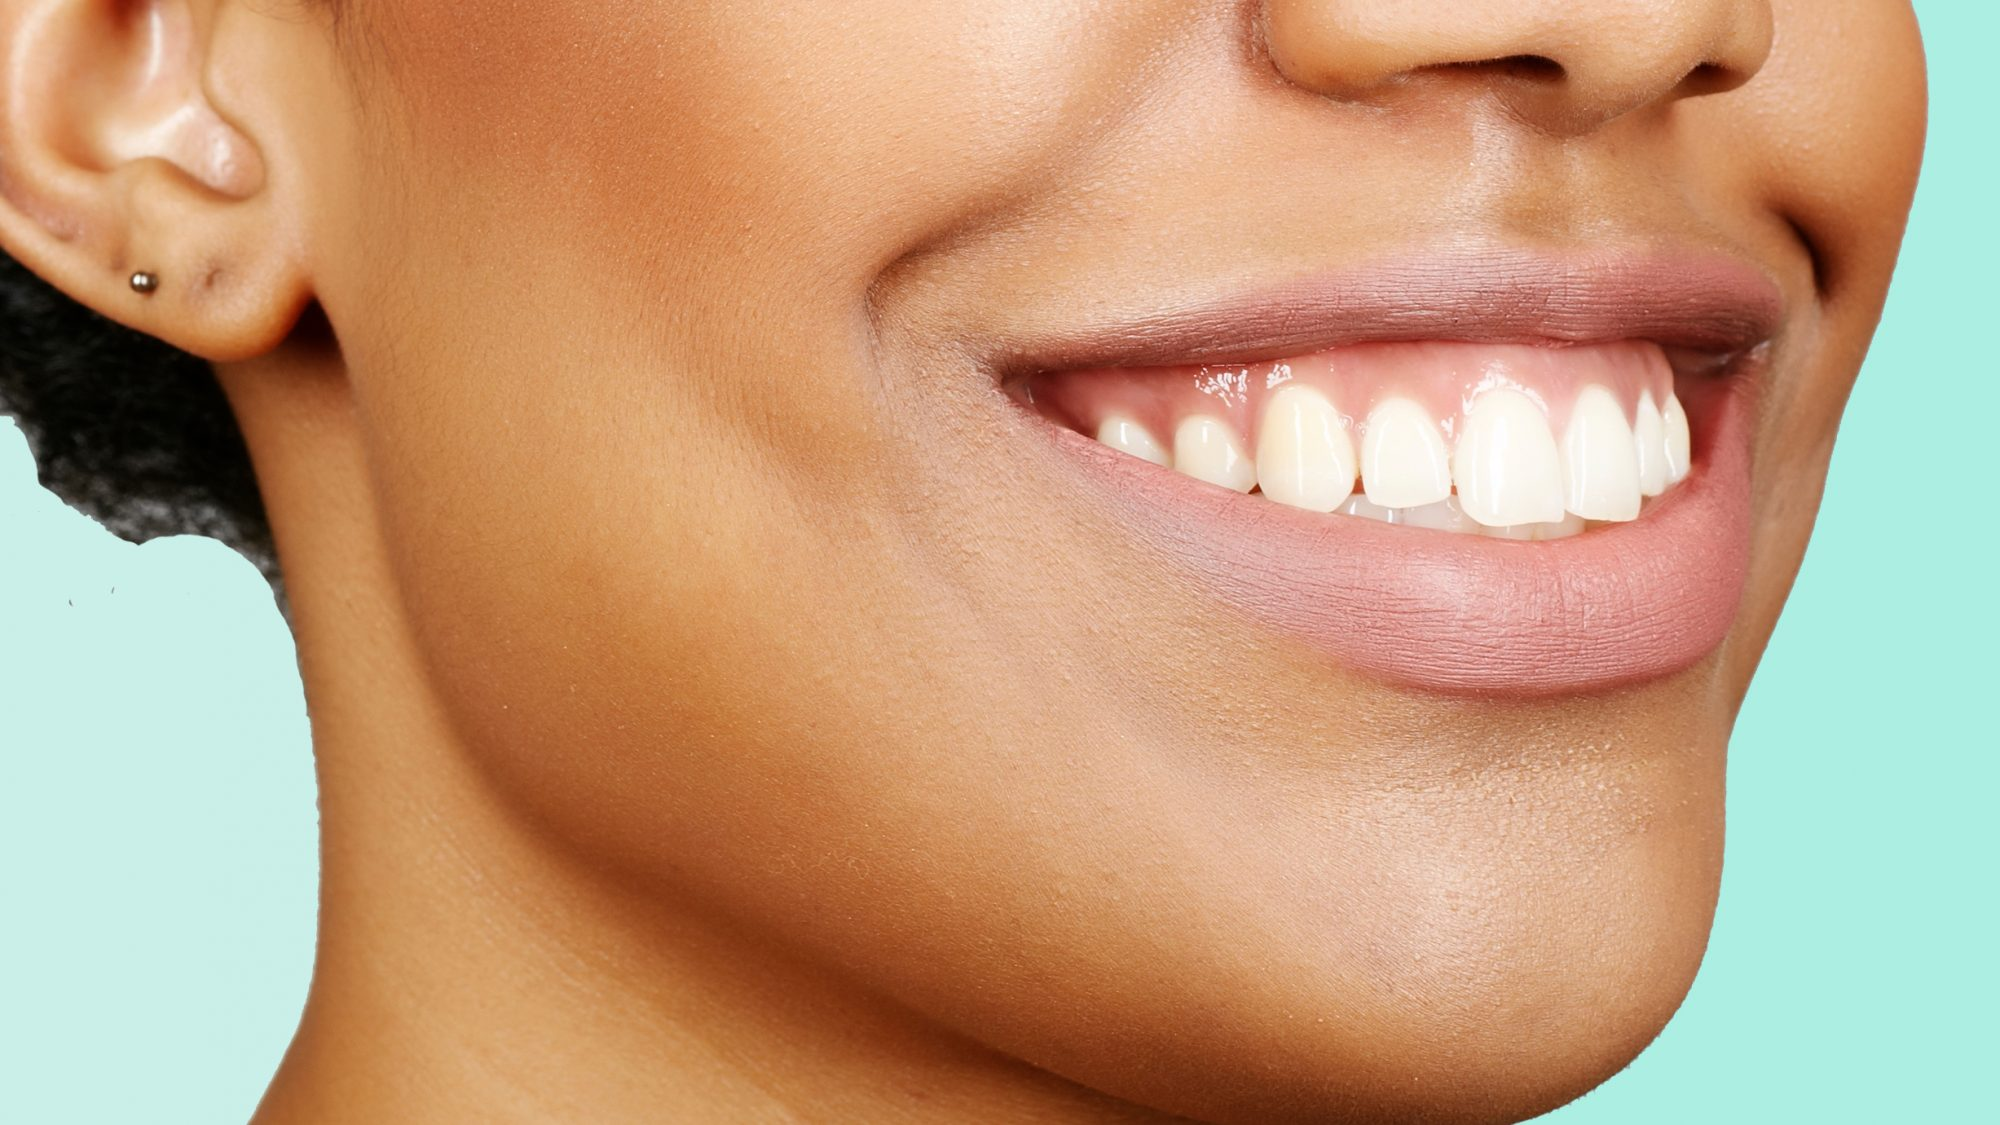 The 5 Best Dentist-Approved Ways to Get Whiter Teeth